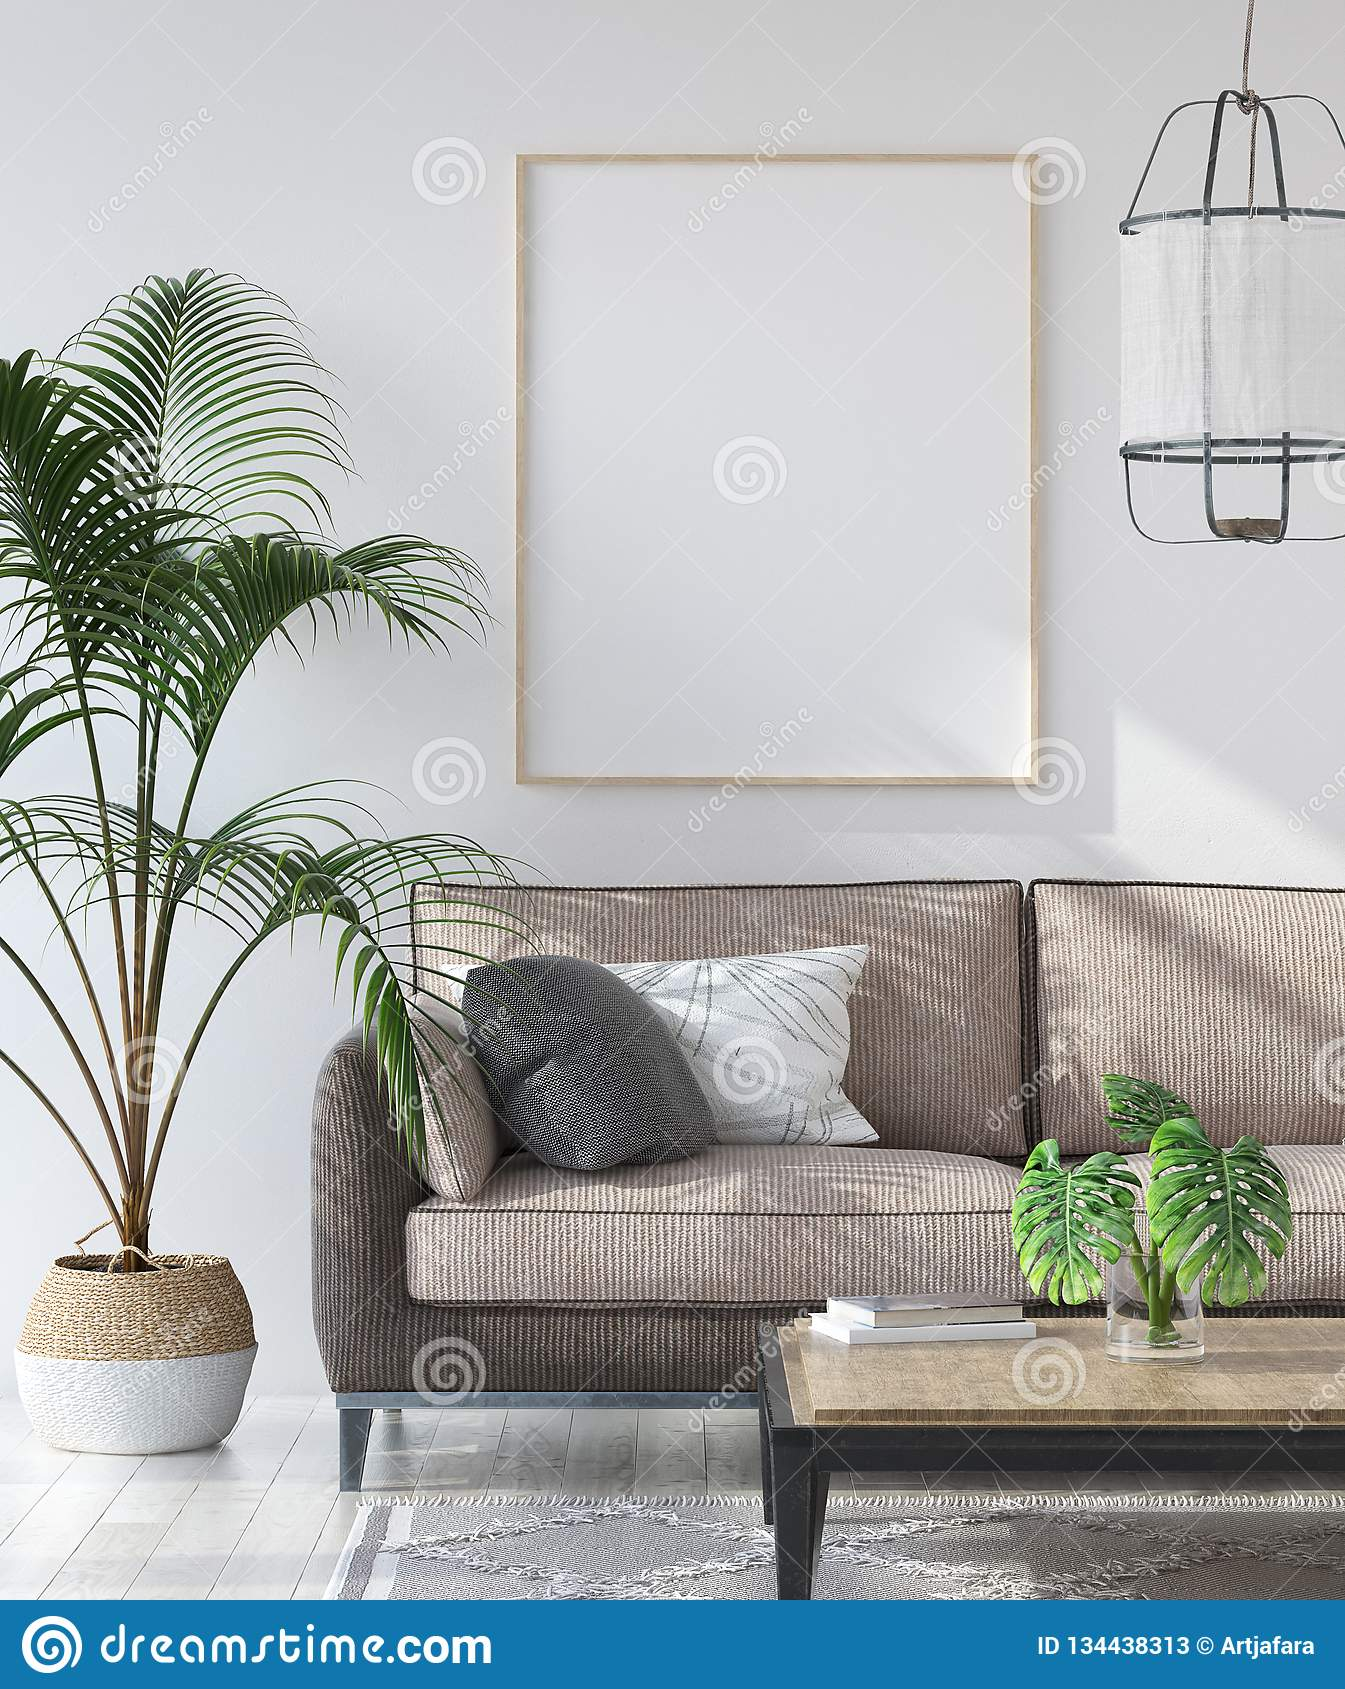 Mockup poster in hipster living room interior, Scandinavian style